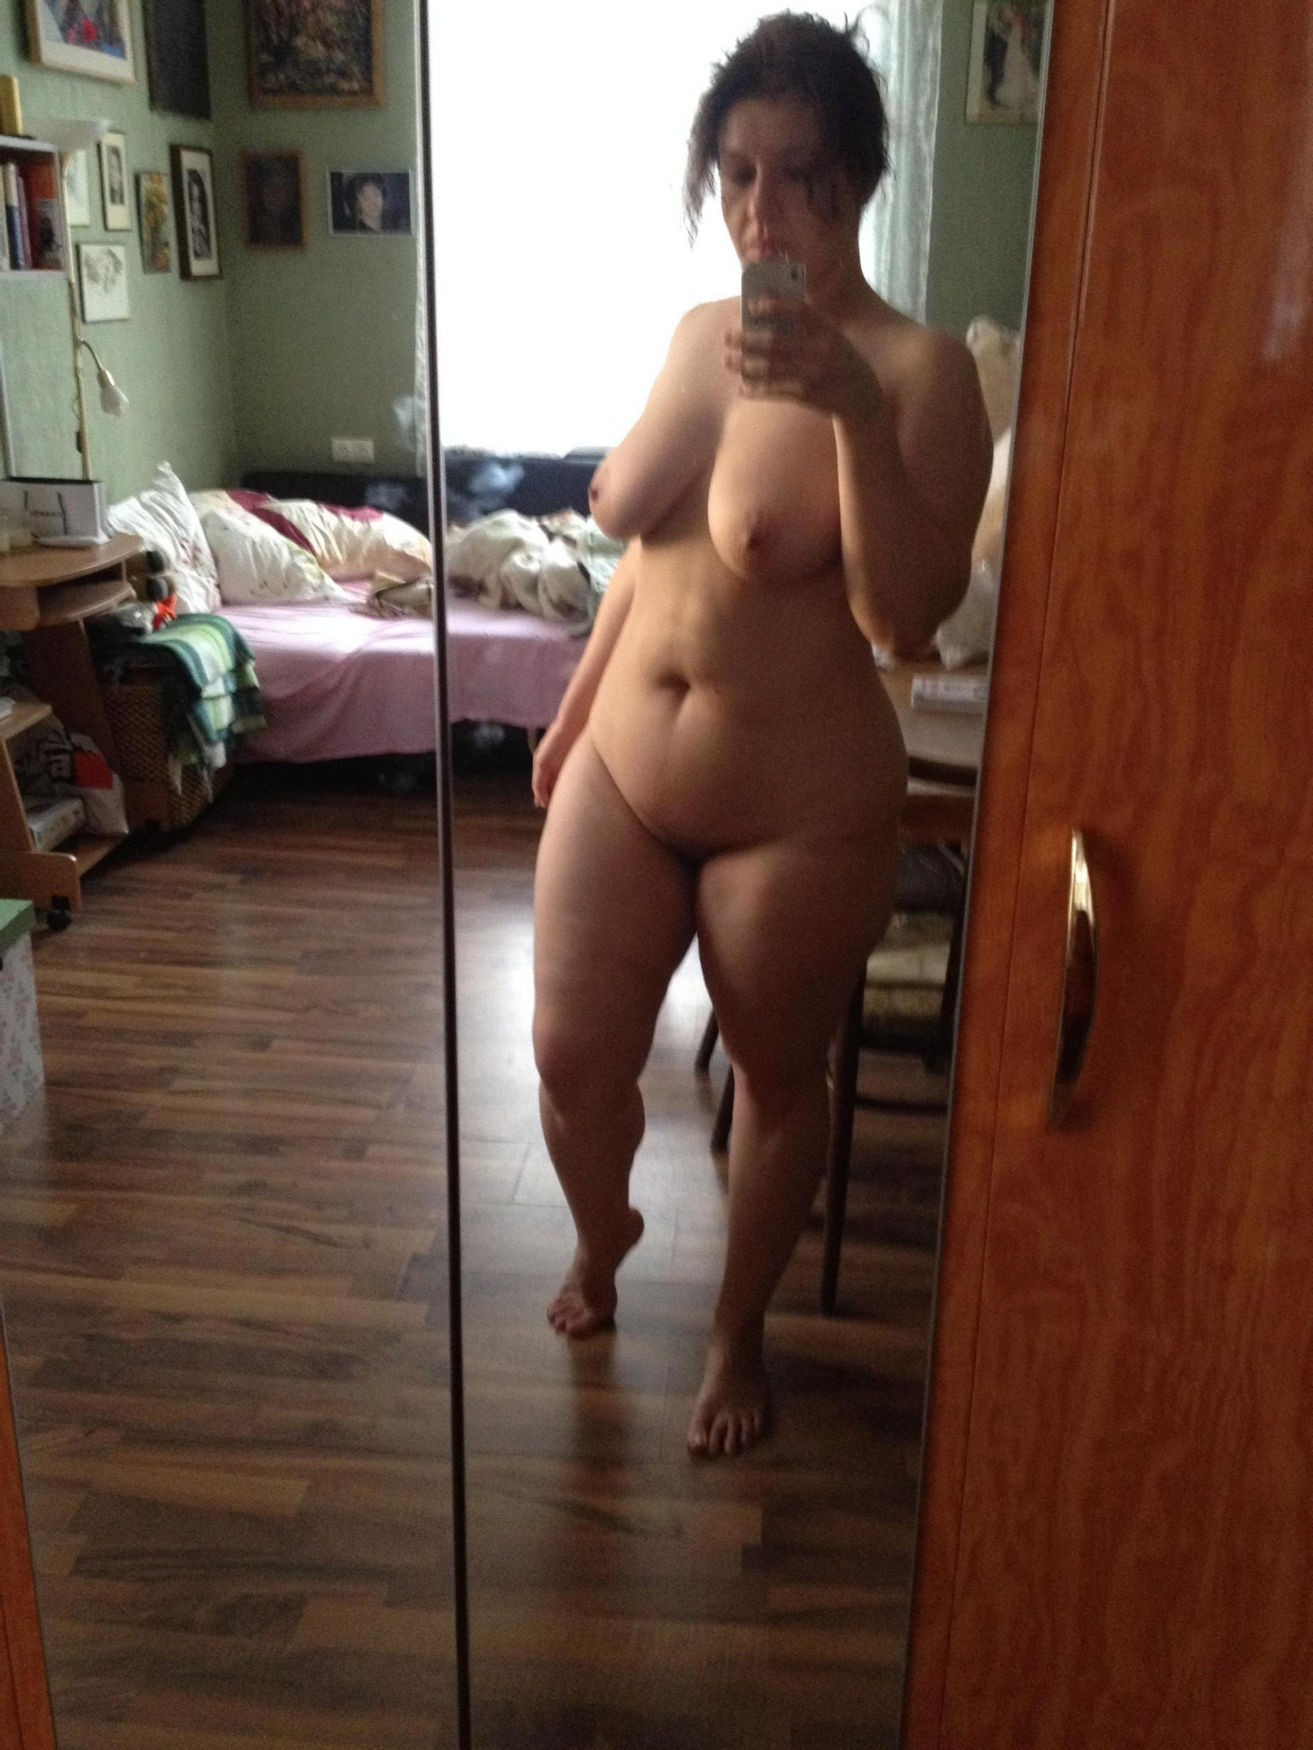 Amateur senior take totally naked selfie in the mirror